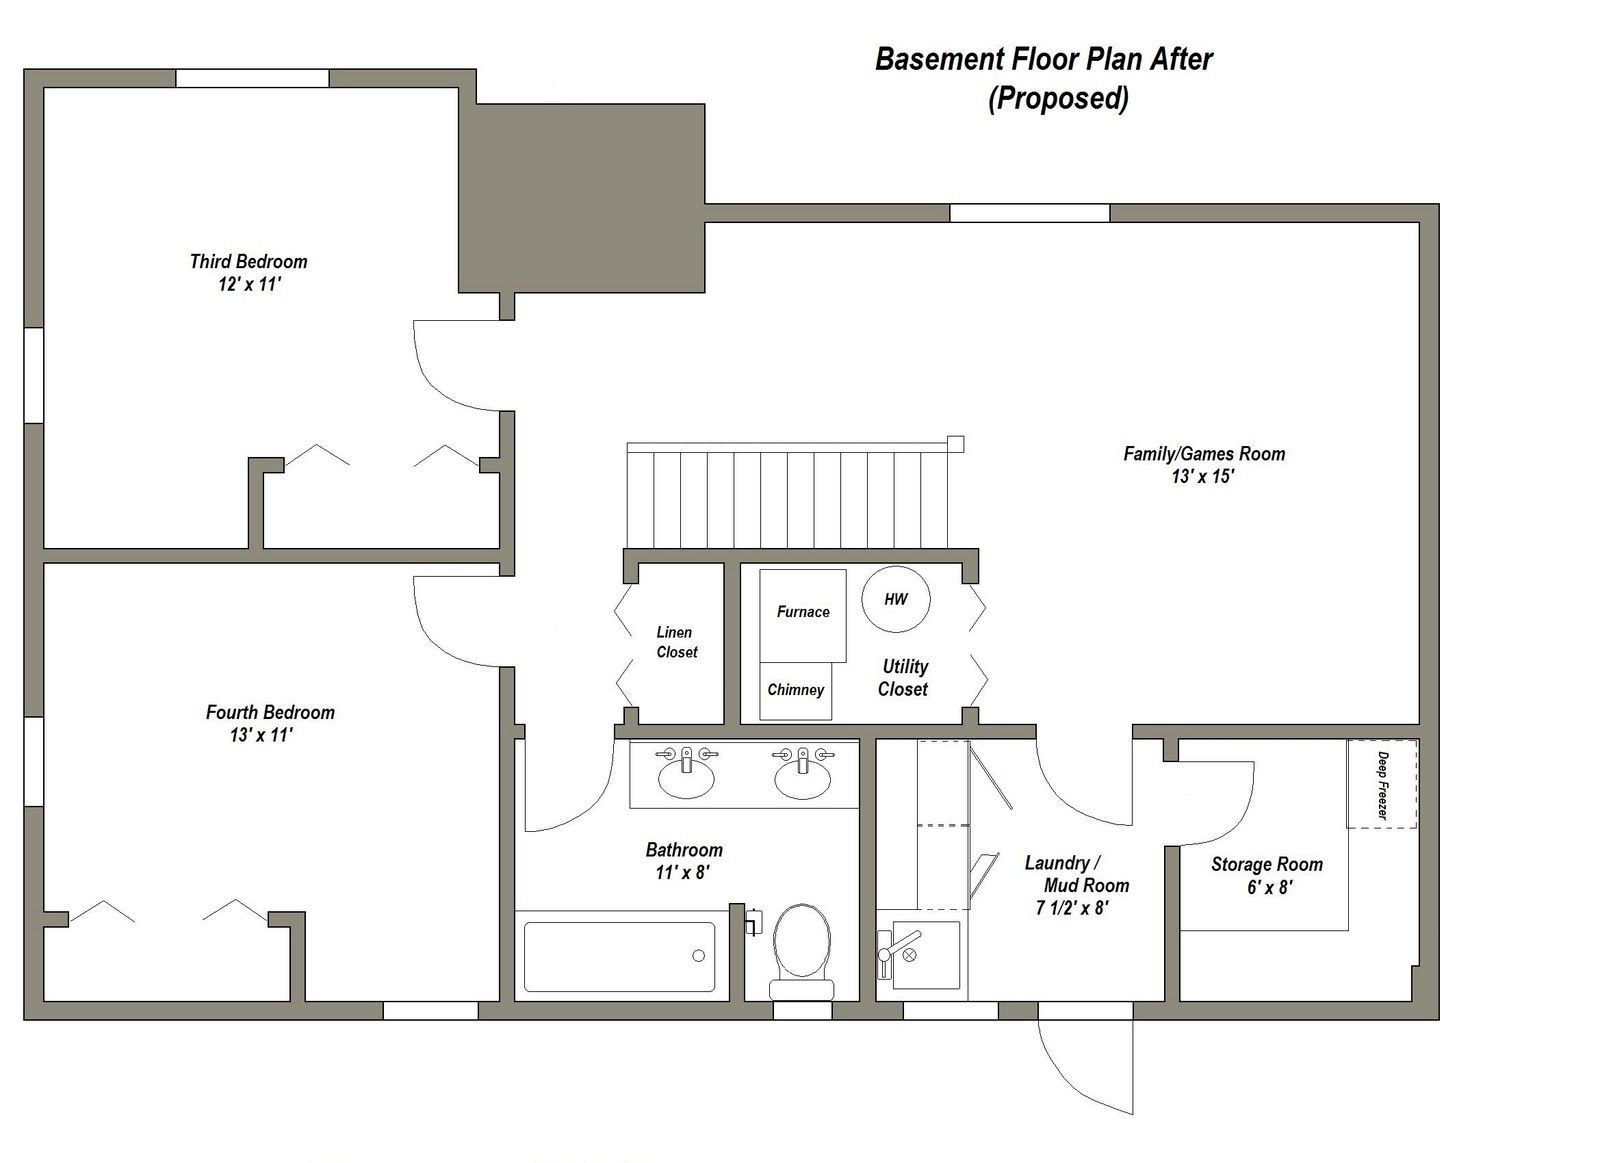 Basements Remodel Floor Plan 28x40 Basement Floor Plan After Proposed Basement Floor Plans Basement Flooring Basement Layout